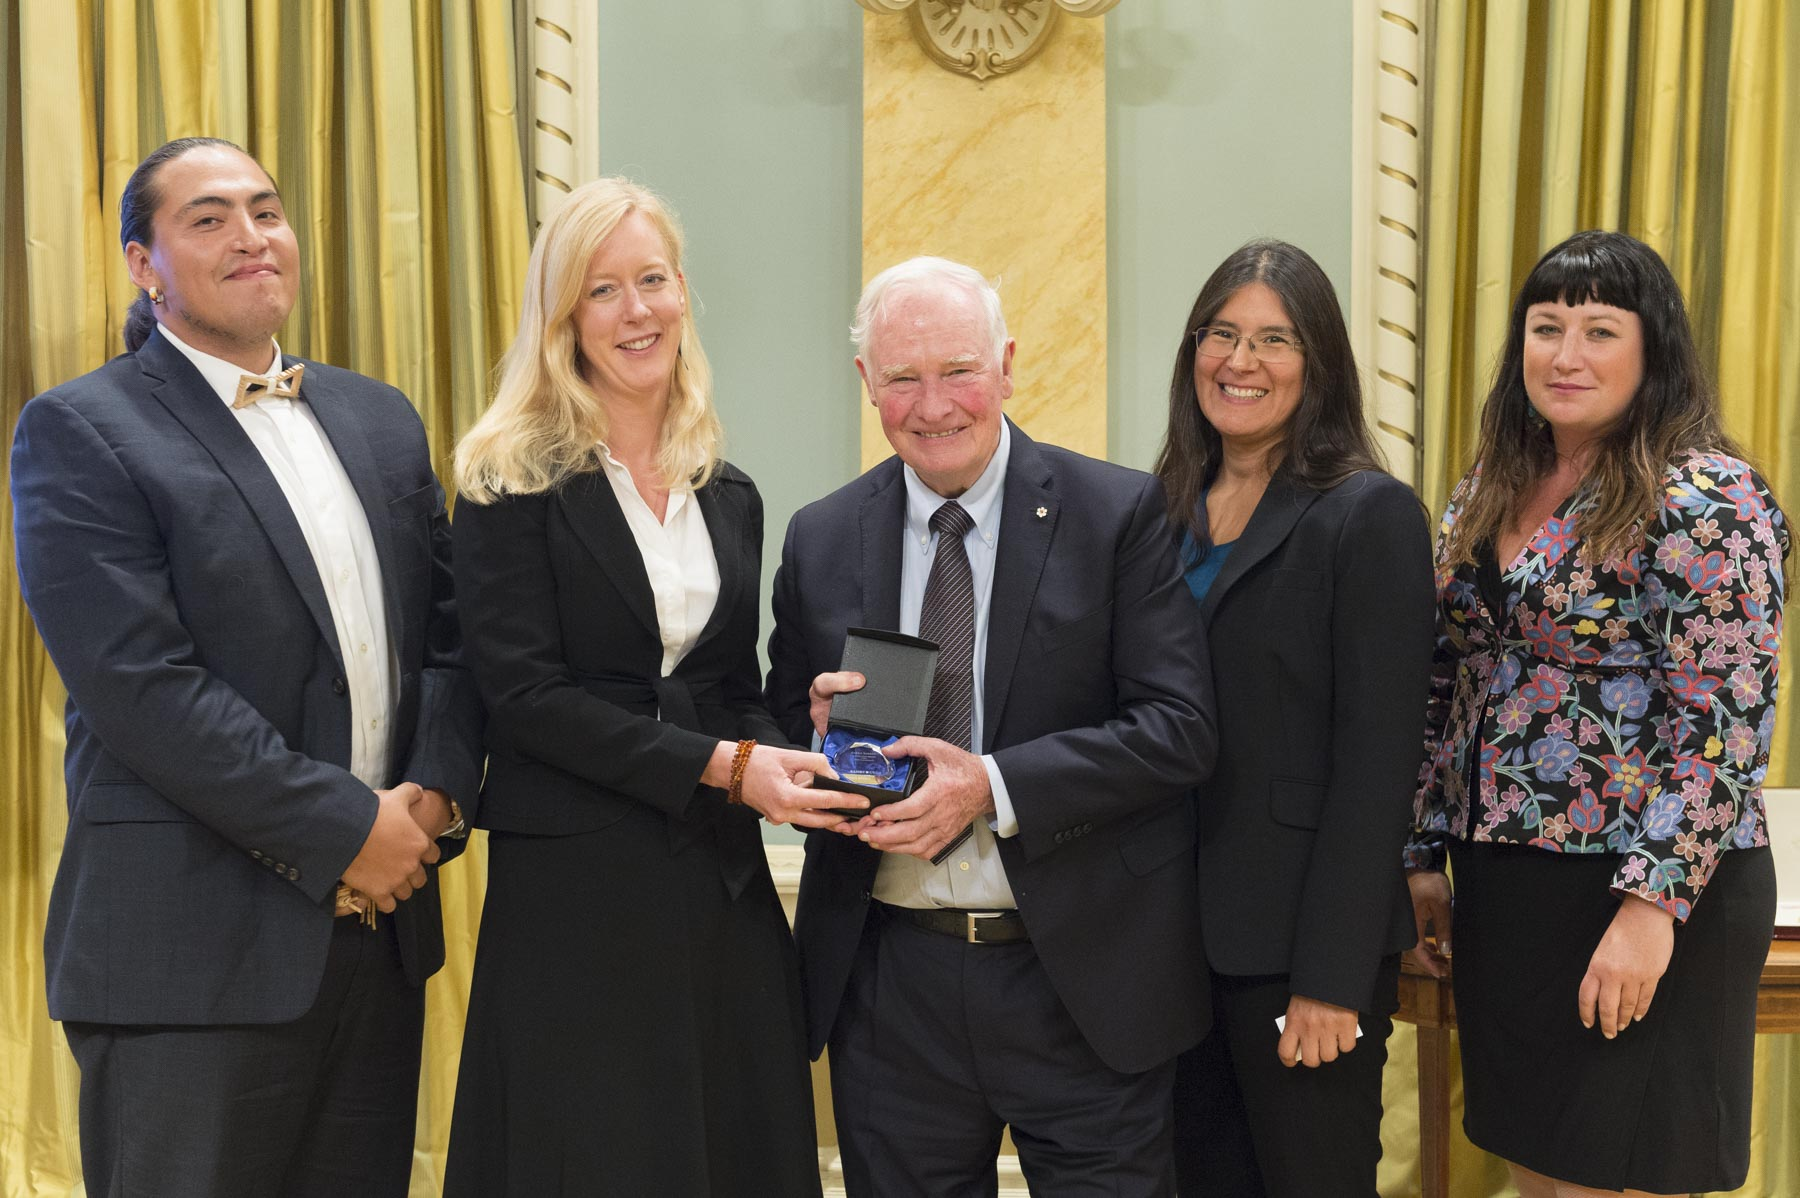 Karen Bakker (2nd from left) received the Connection Award. She accepted her award with members of her research team. Ms.  Bakker leads an interdisciplinary team of academic researchers and community-based organizations participating in the Sustainable Water Governance and Indigenous Law project.